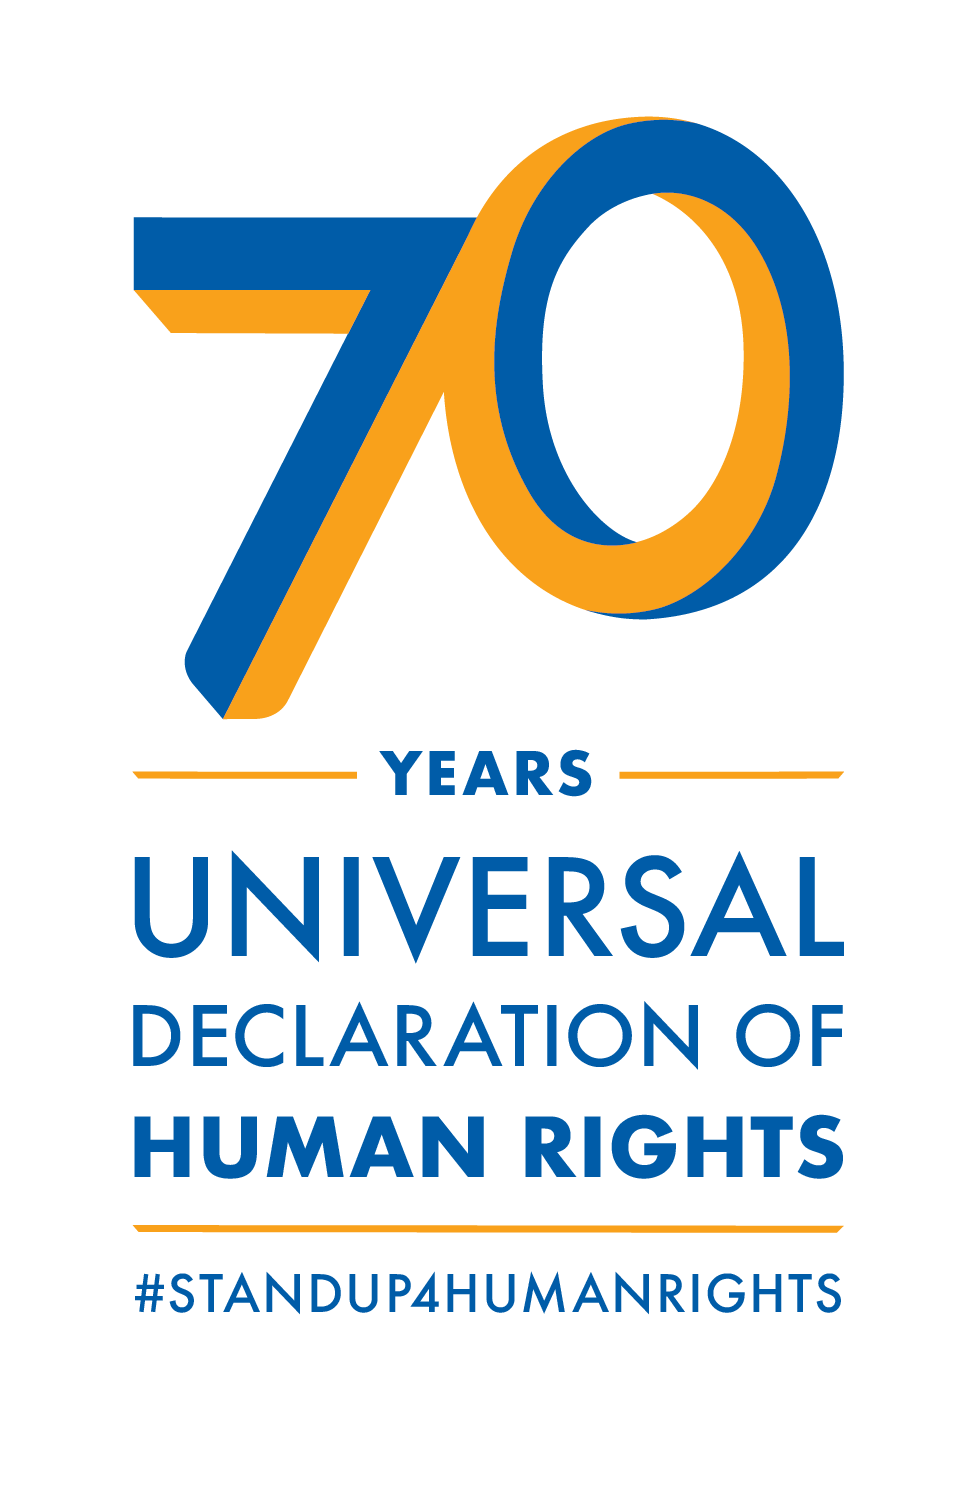 Human rights day 2017 canadian atheist logo for the 70th anniversary of the universal declaration of human rights it is biocorpaavc